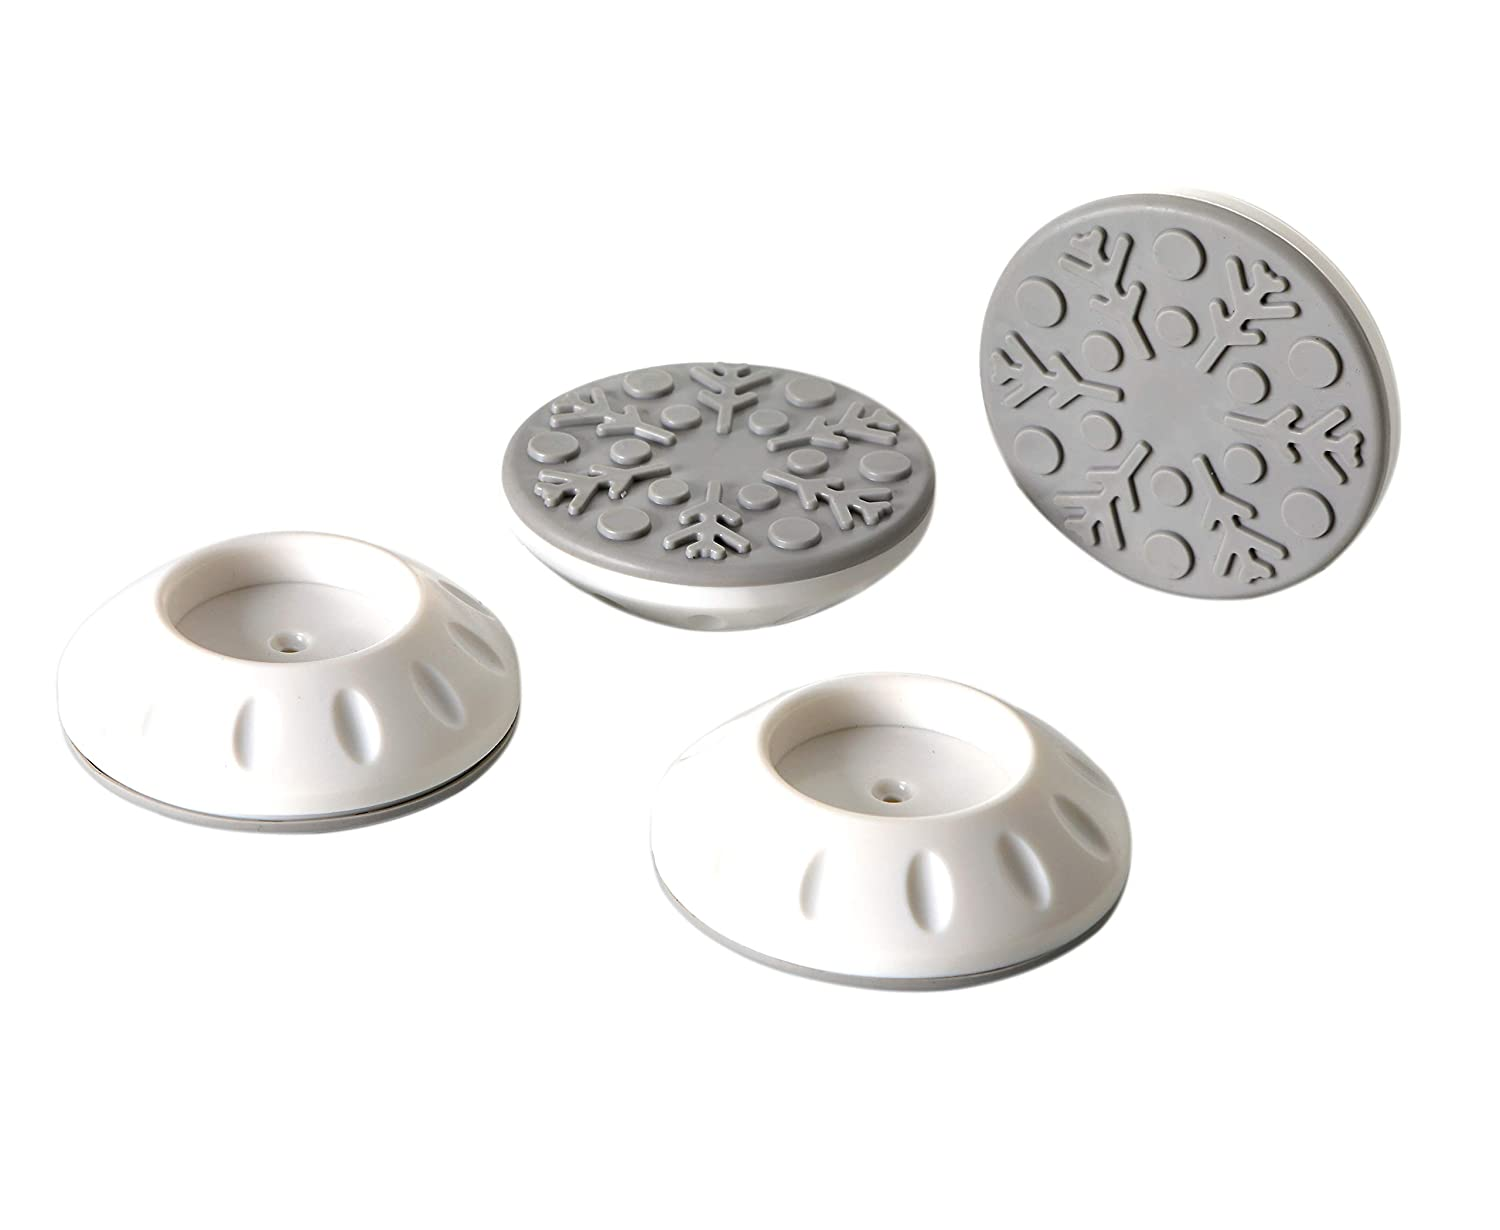 G Ganen Baby Gate Wall Protector - Protect Walls & Doorways from Pet & Dog Gates-4 Pack Wall Cups White